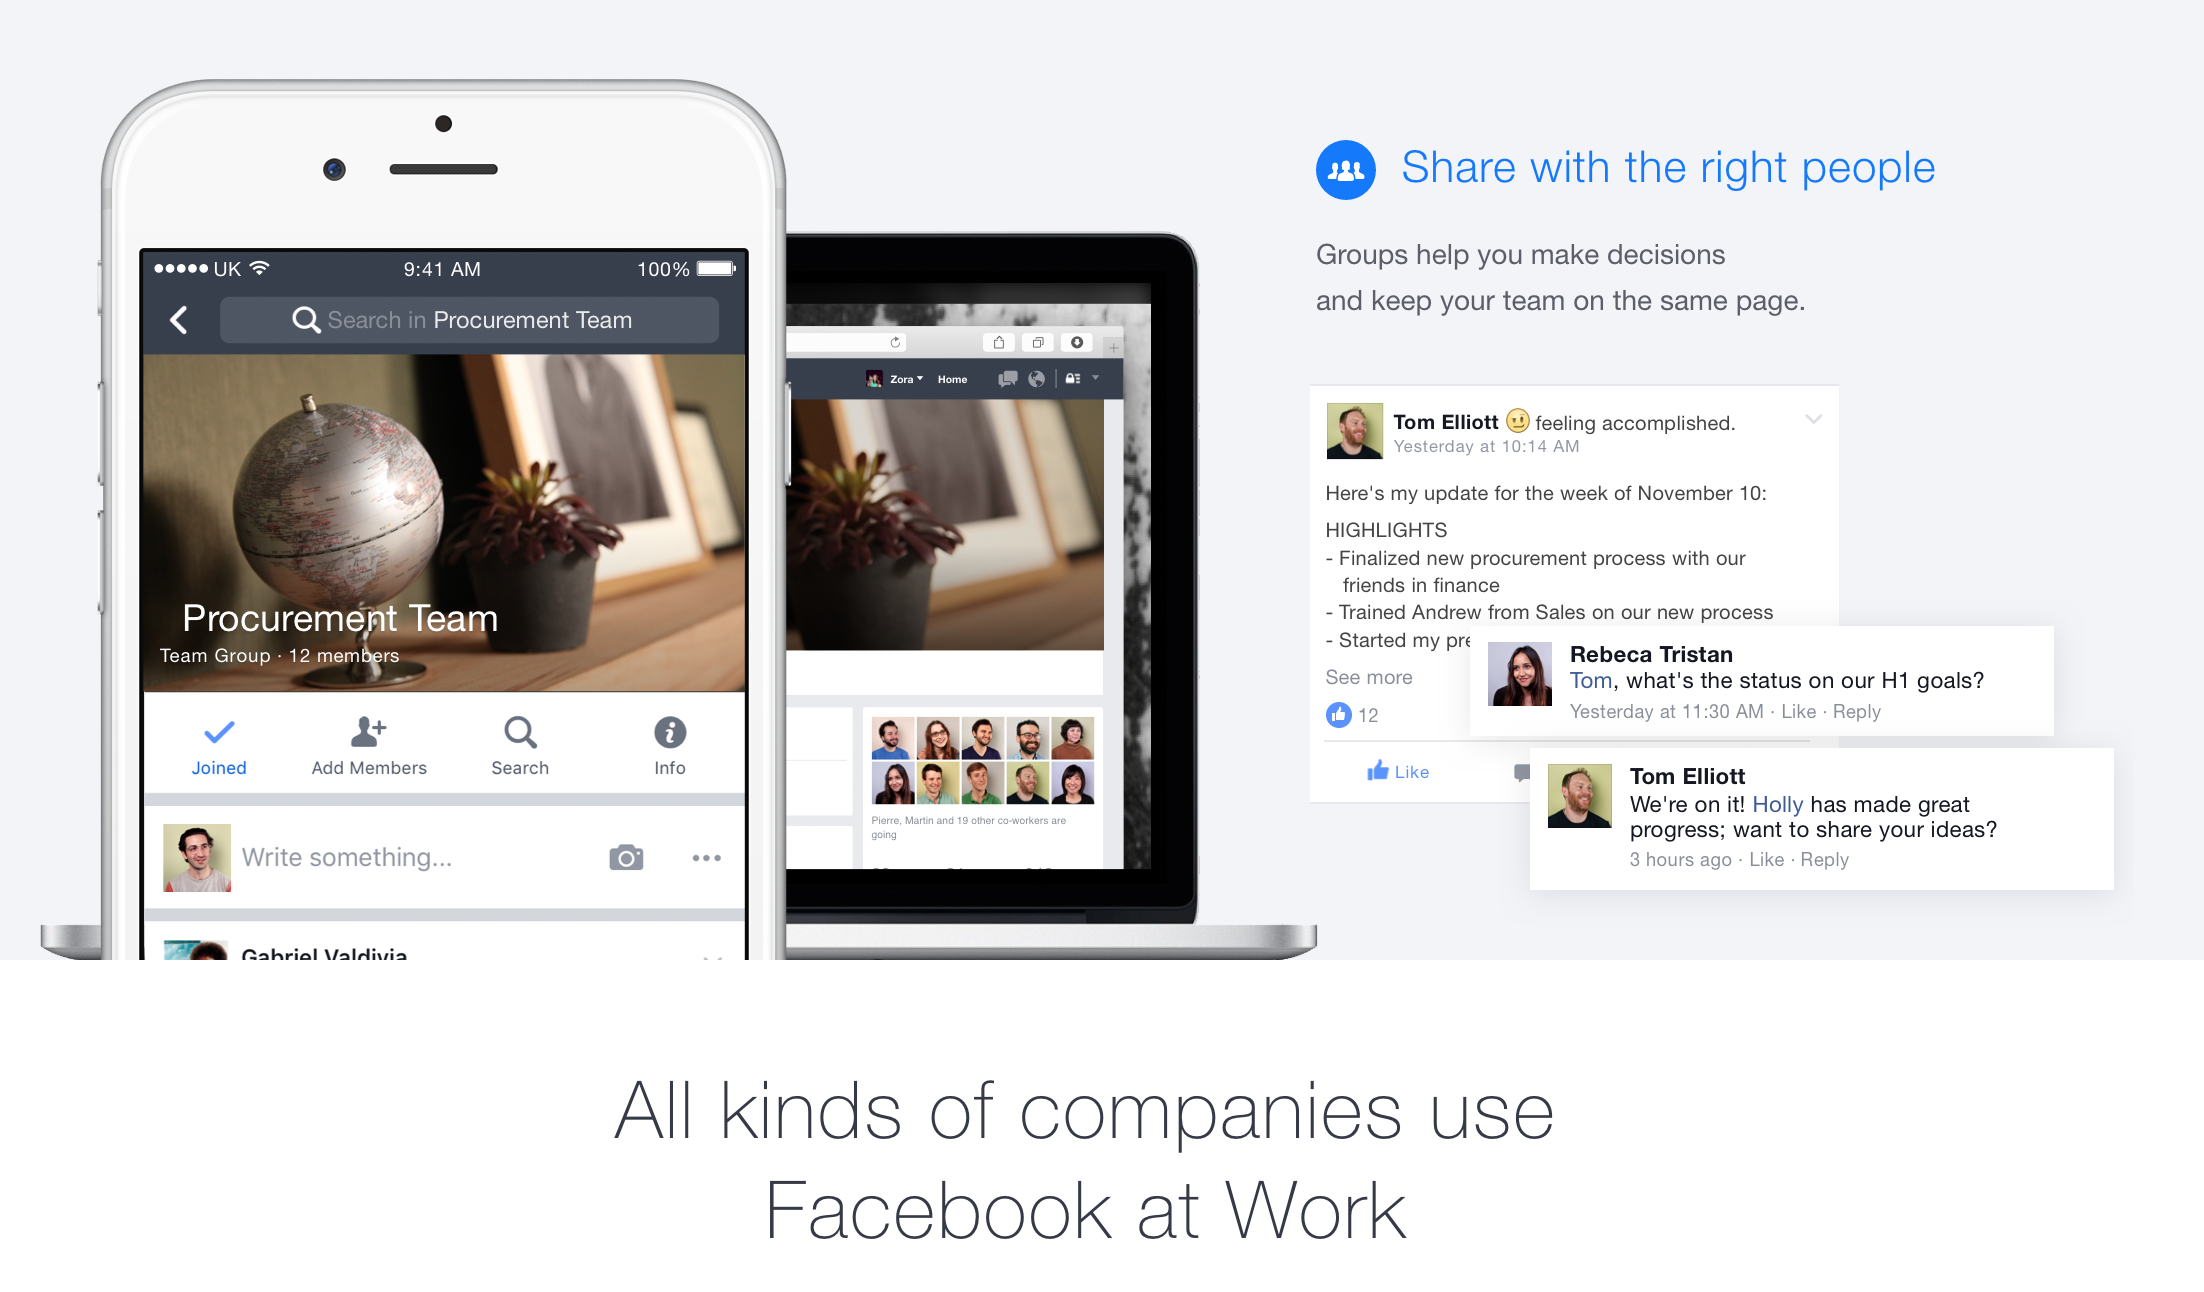 facebook might make you more productive at work soon facebook at work could be a solution employers are looking for especially since most employees are already familiar the network and the fact that